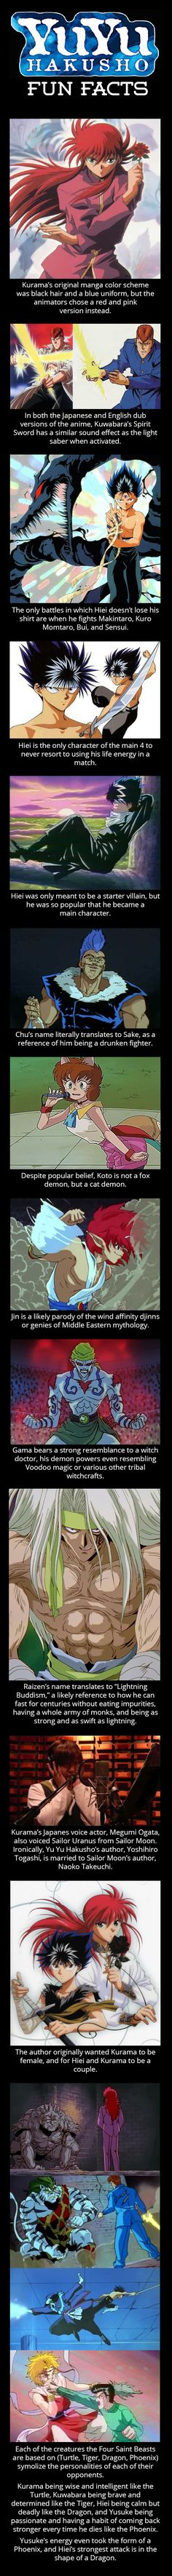 These are mostly interesting Yu Yu Hakusho fun facts I didn't know, but the comparison between it and Sailor Moon, I did know.